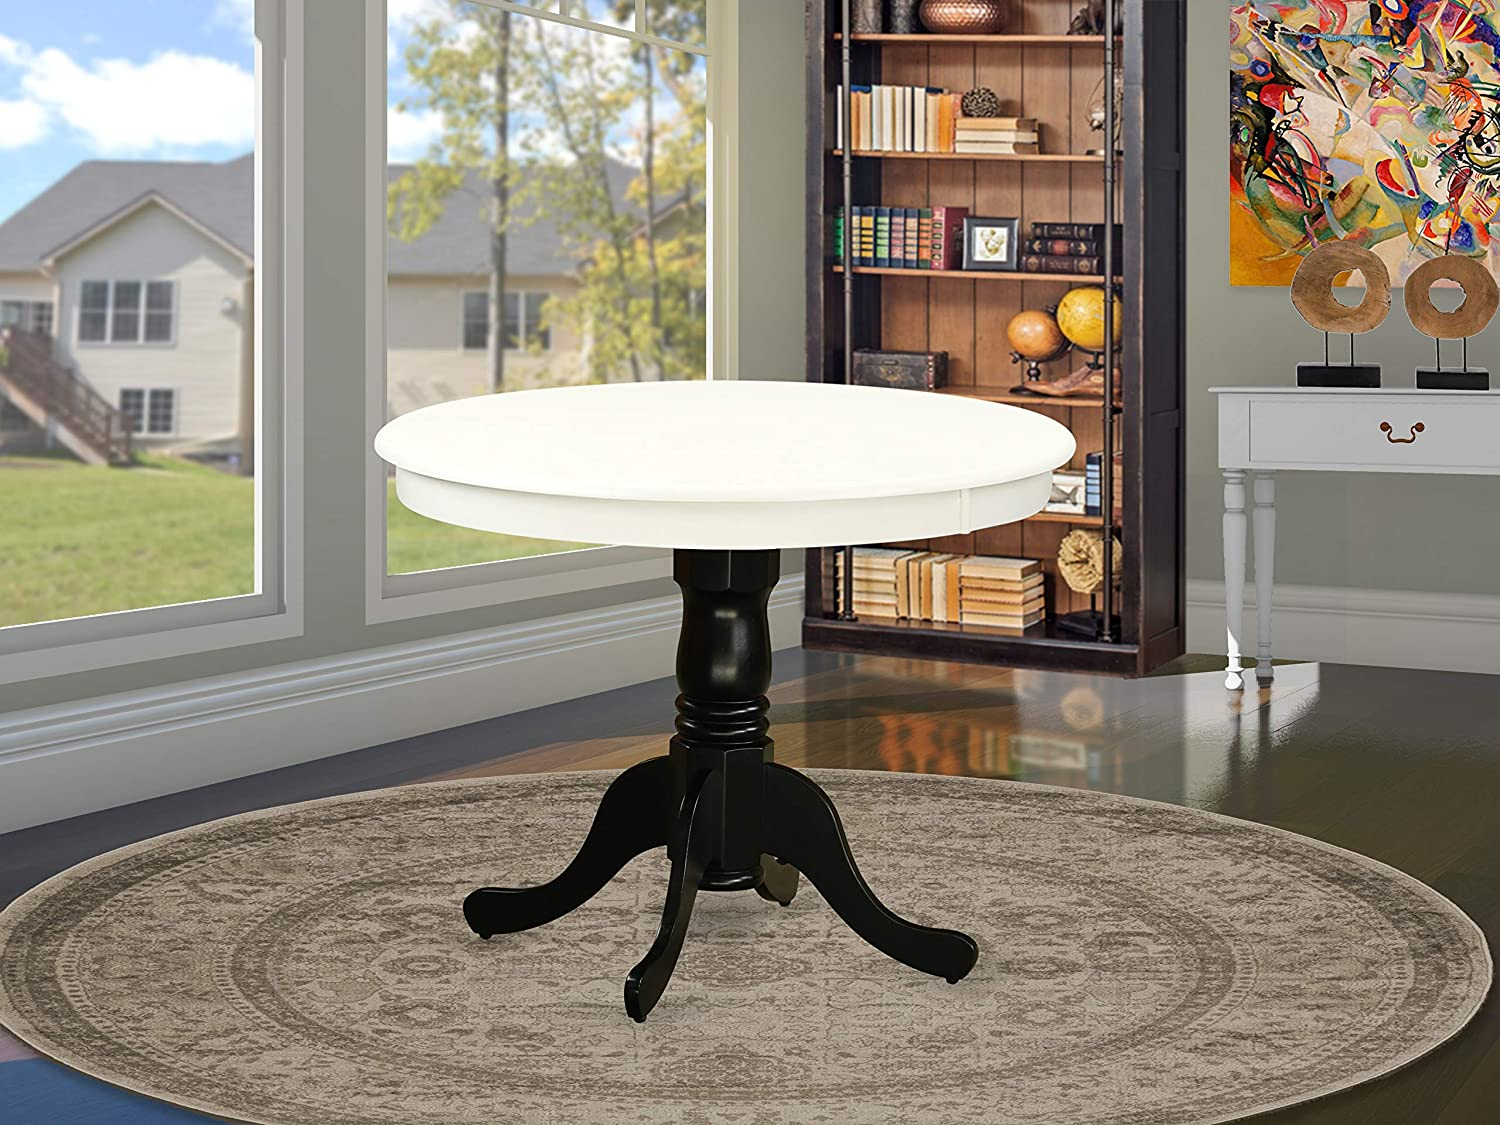 "East West Furniture Antique Dining Table, 36"" Round, Linen White and Black Finish"